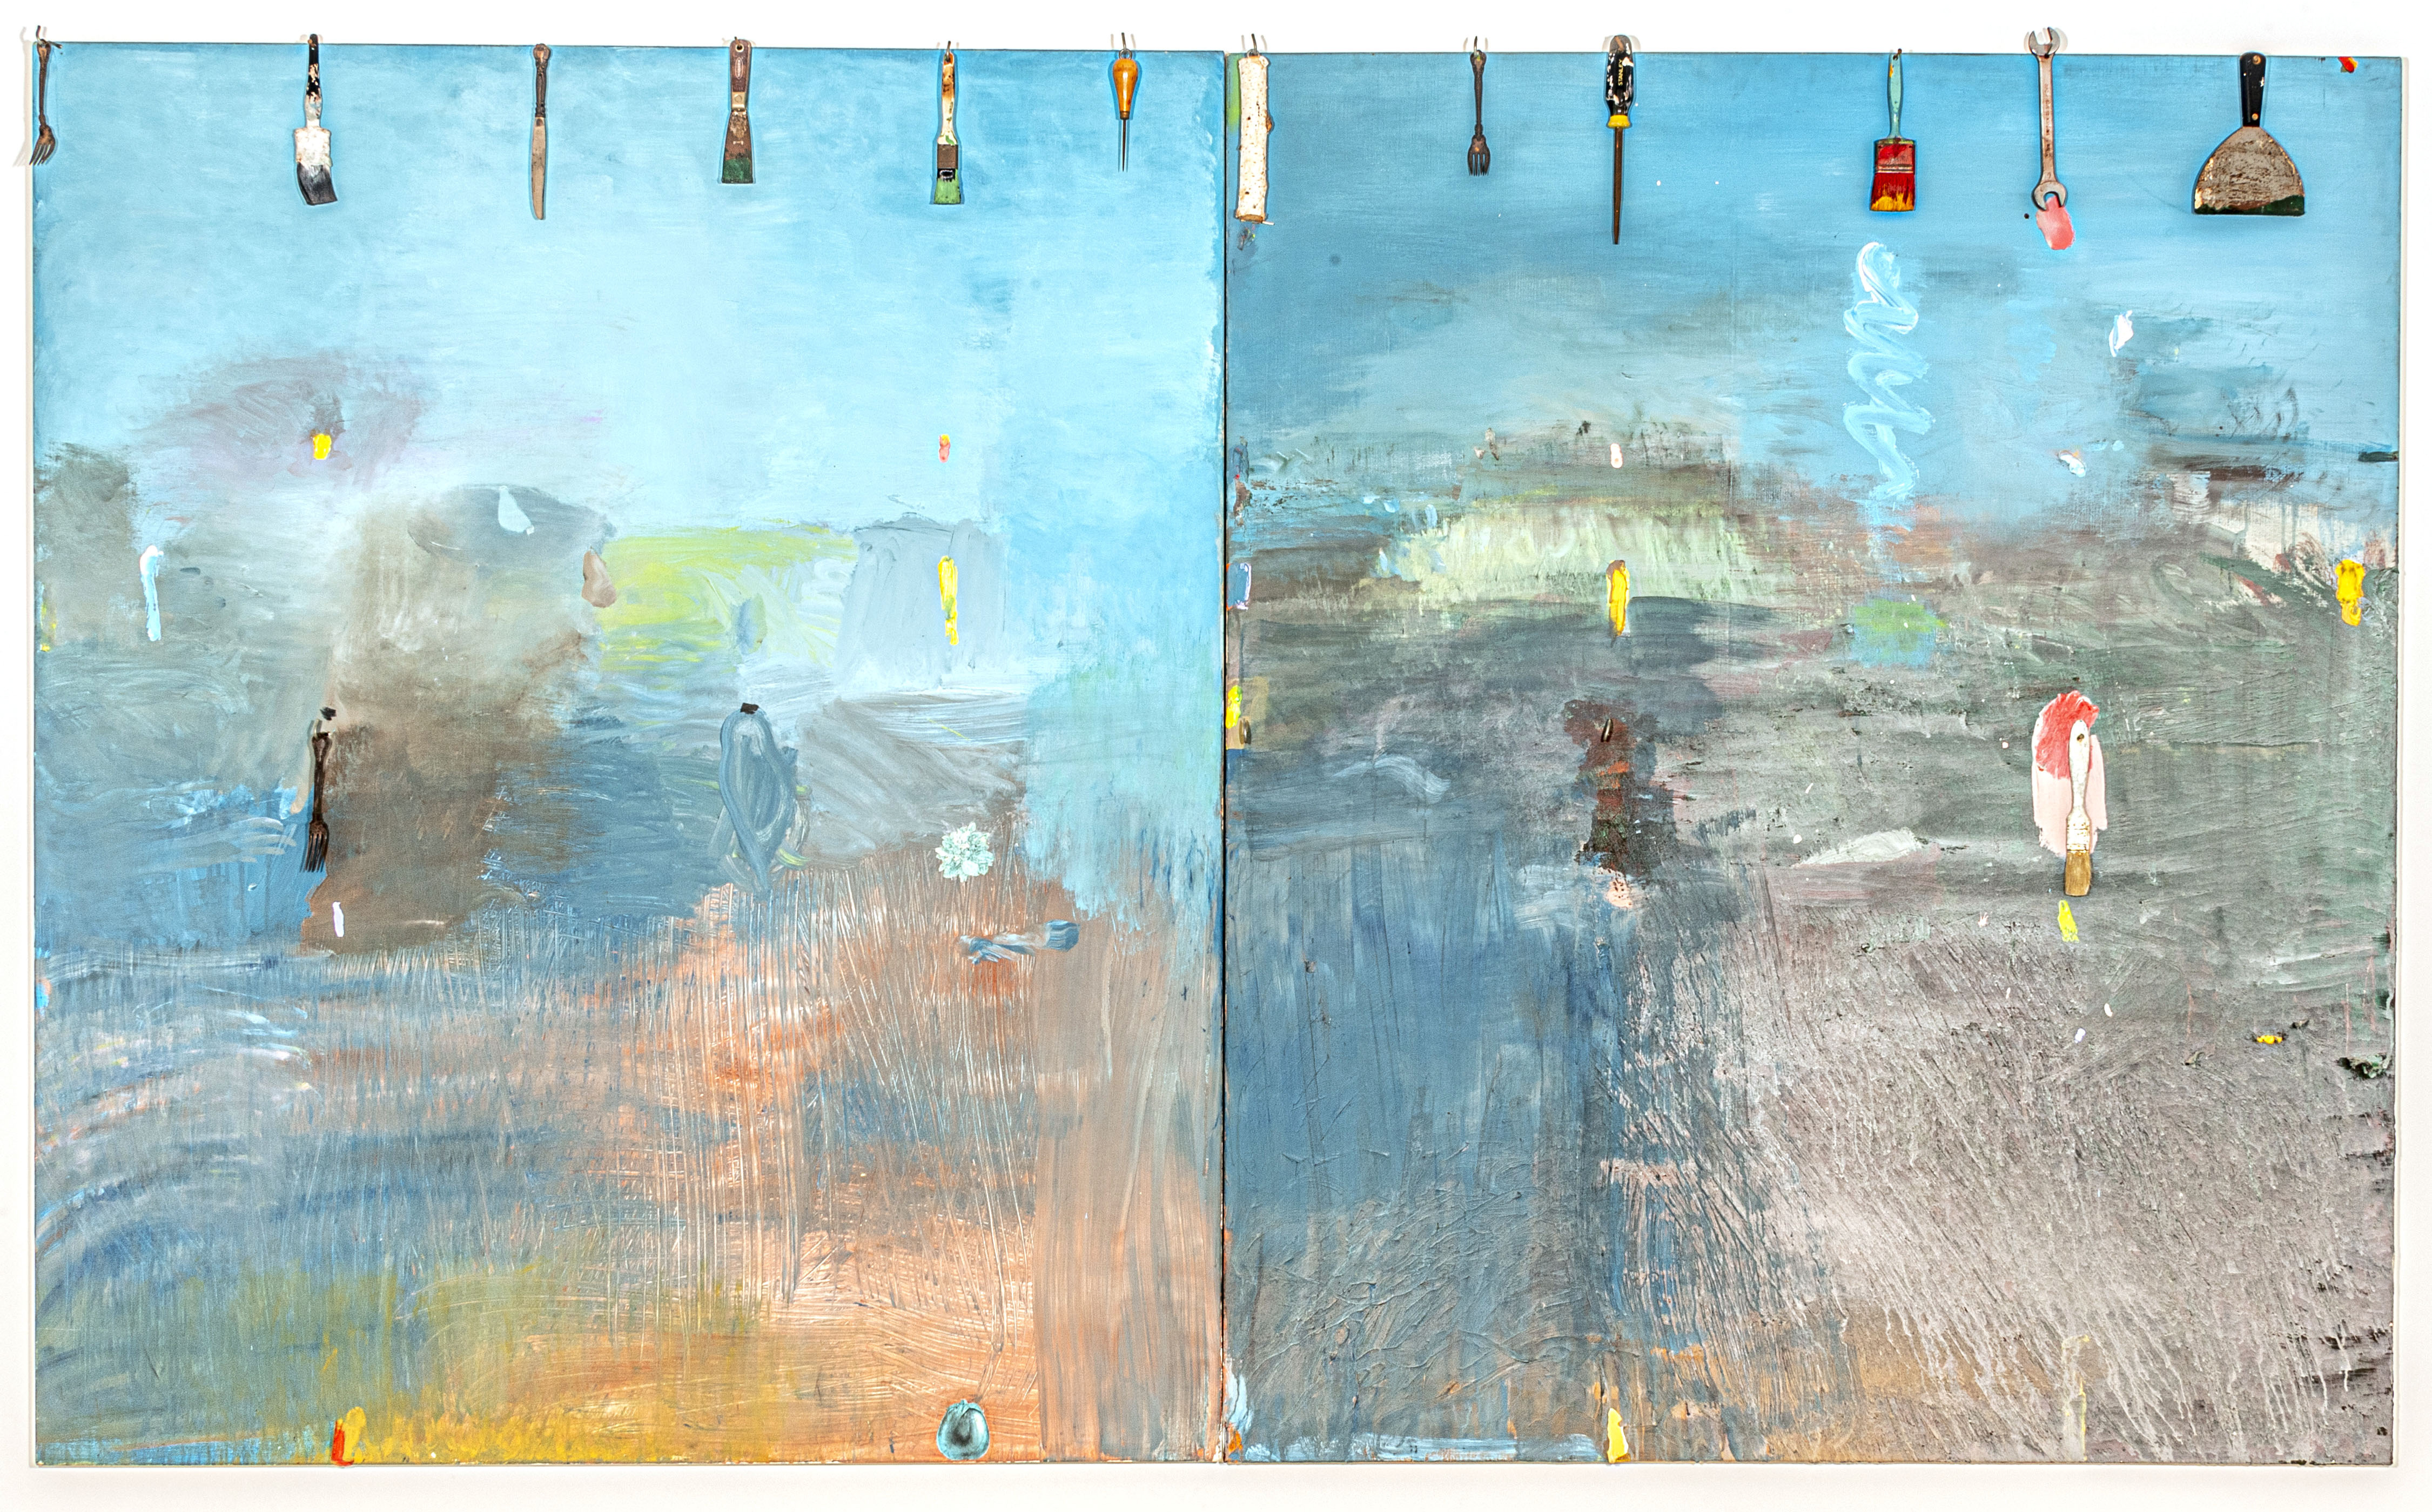 Diptych painting with tools and implements attached to the top by Jim Dine